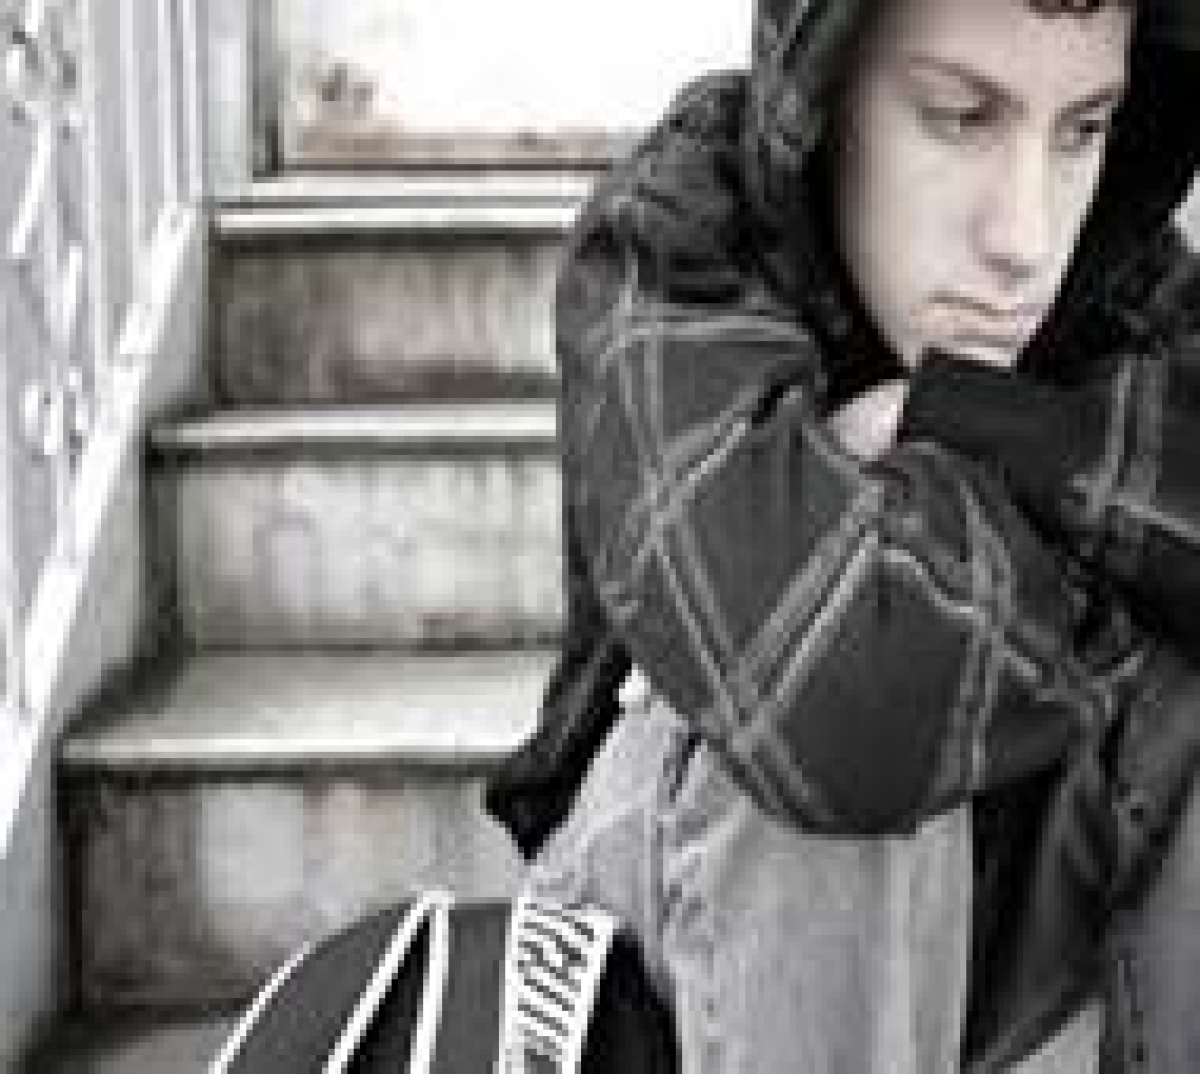 Kids who join youth gangs prone to depression: study